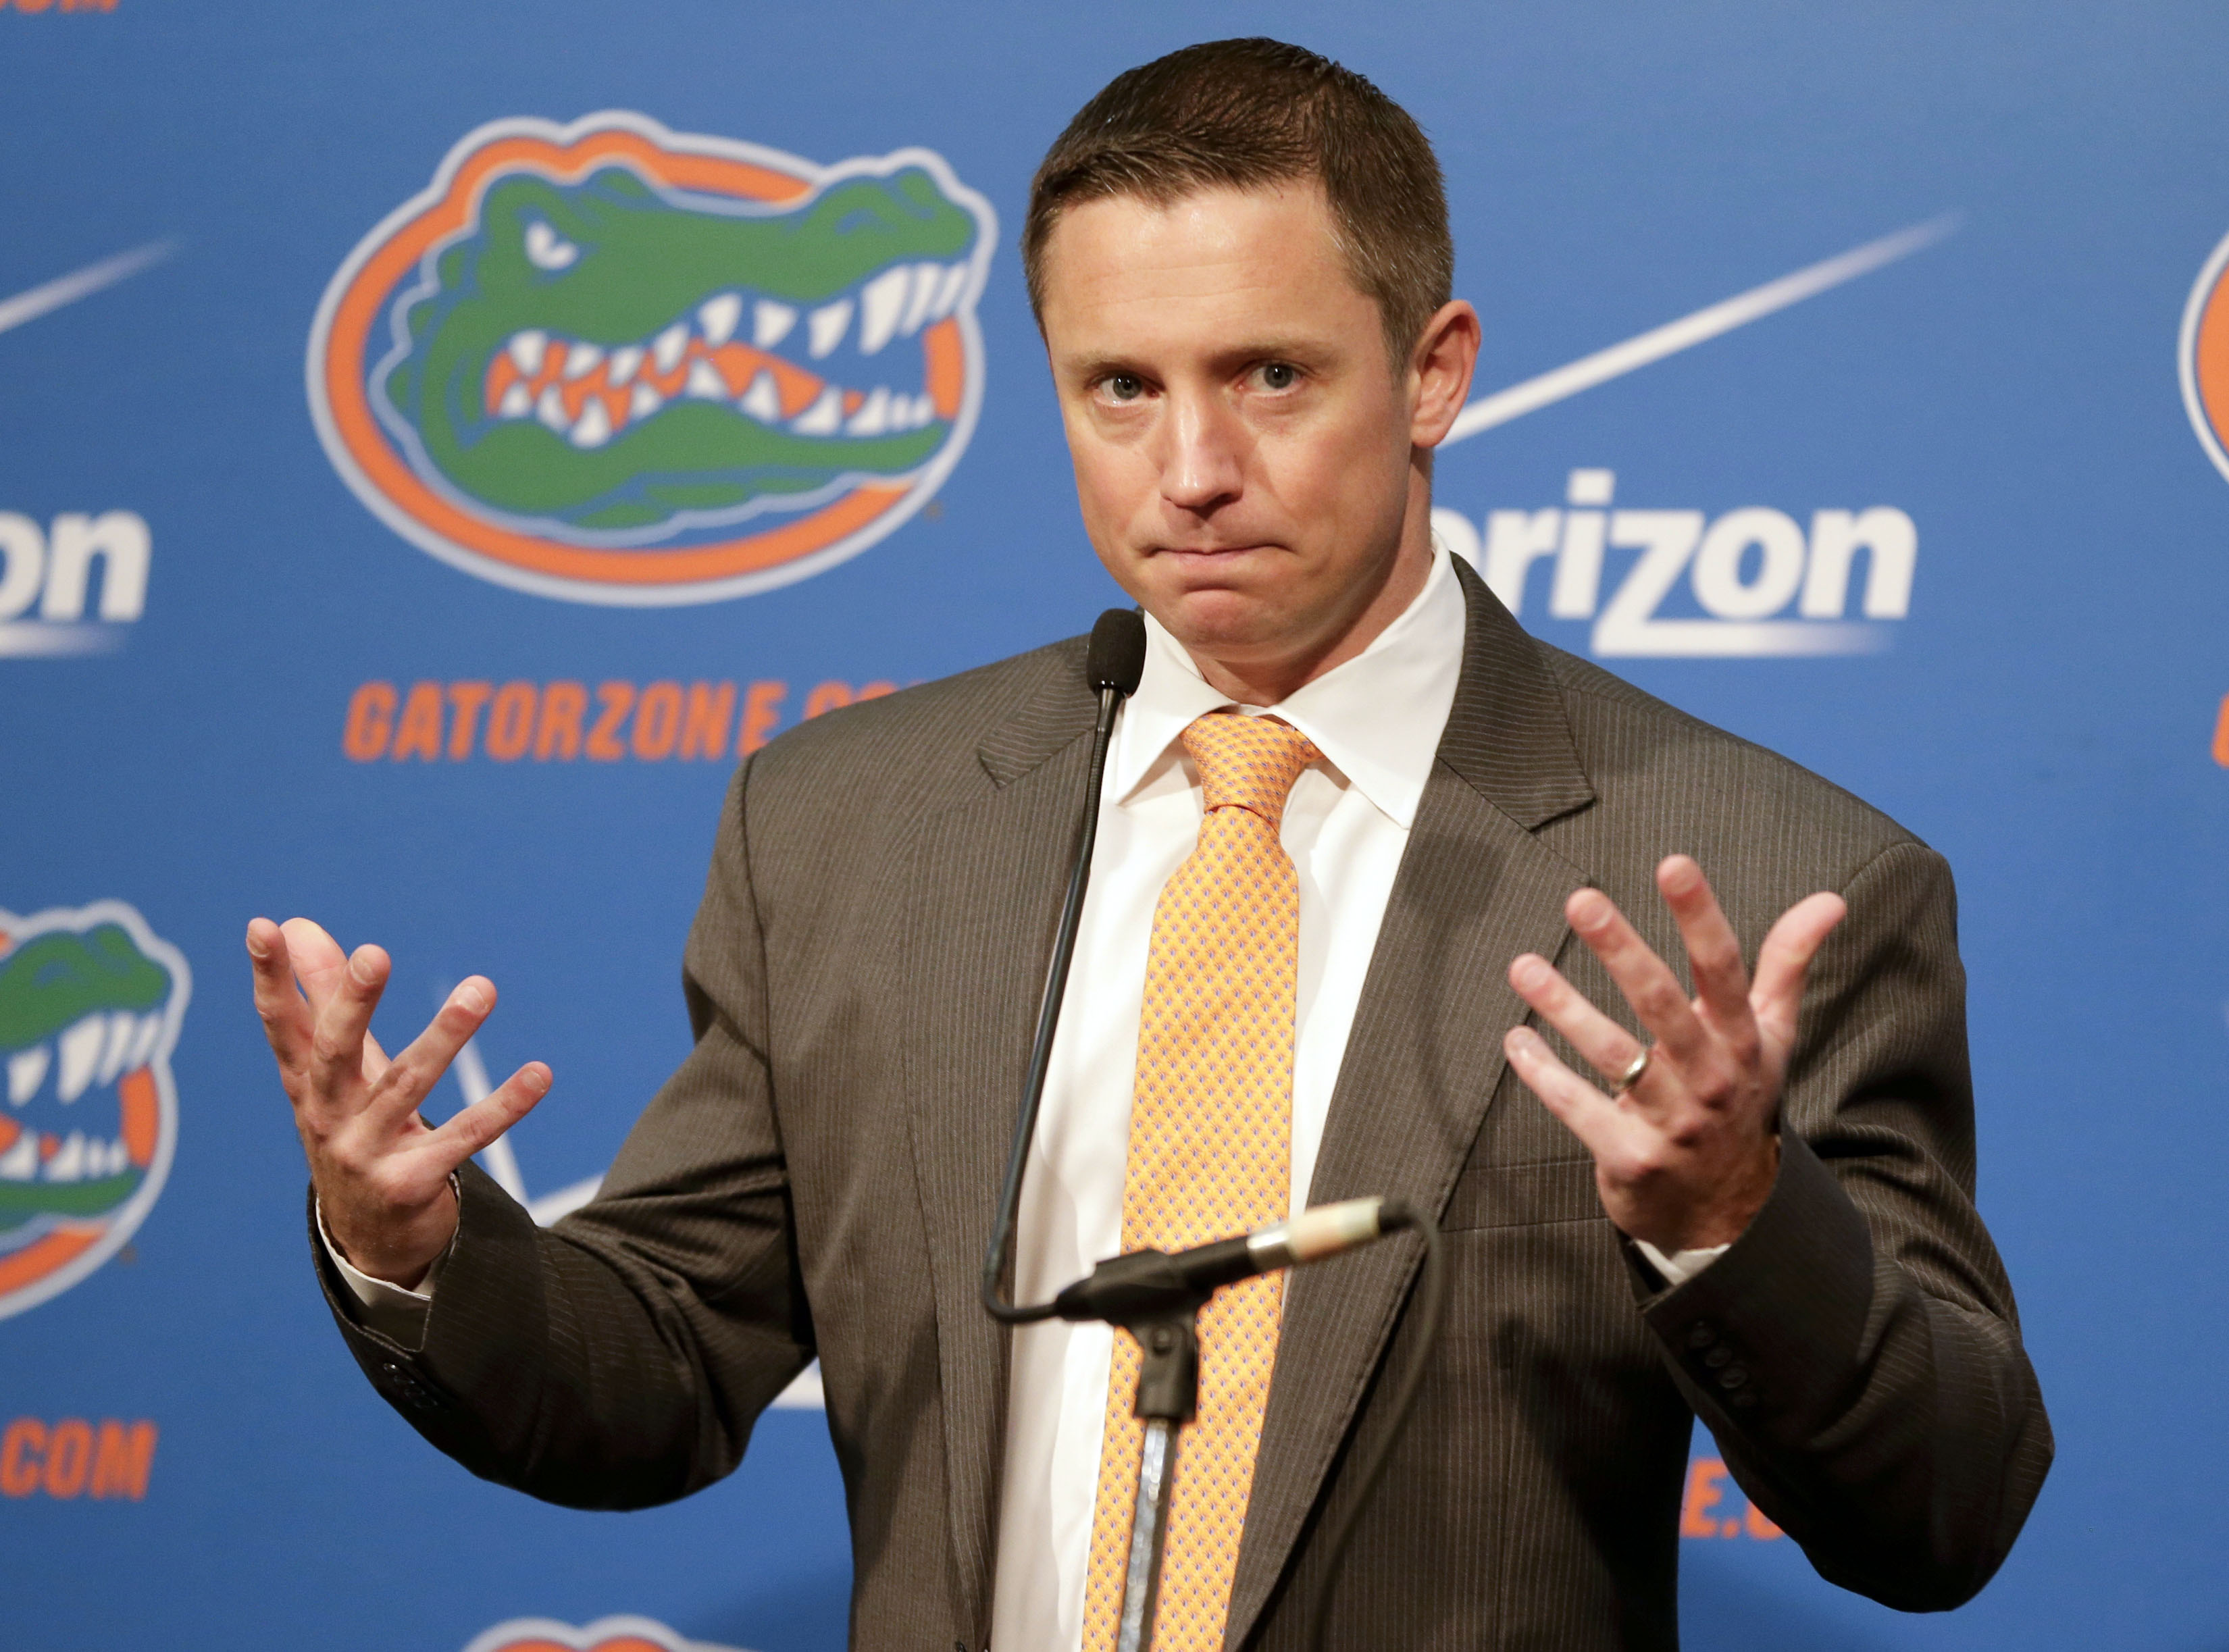 Florida head coach Mike White speaks at a news conference at  NCAA college basketball media day, Tuesday, Sept. 29, 2015, in Gainesville, Fla. (AP Photo/John Raoux)